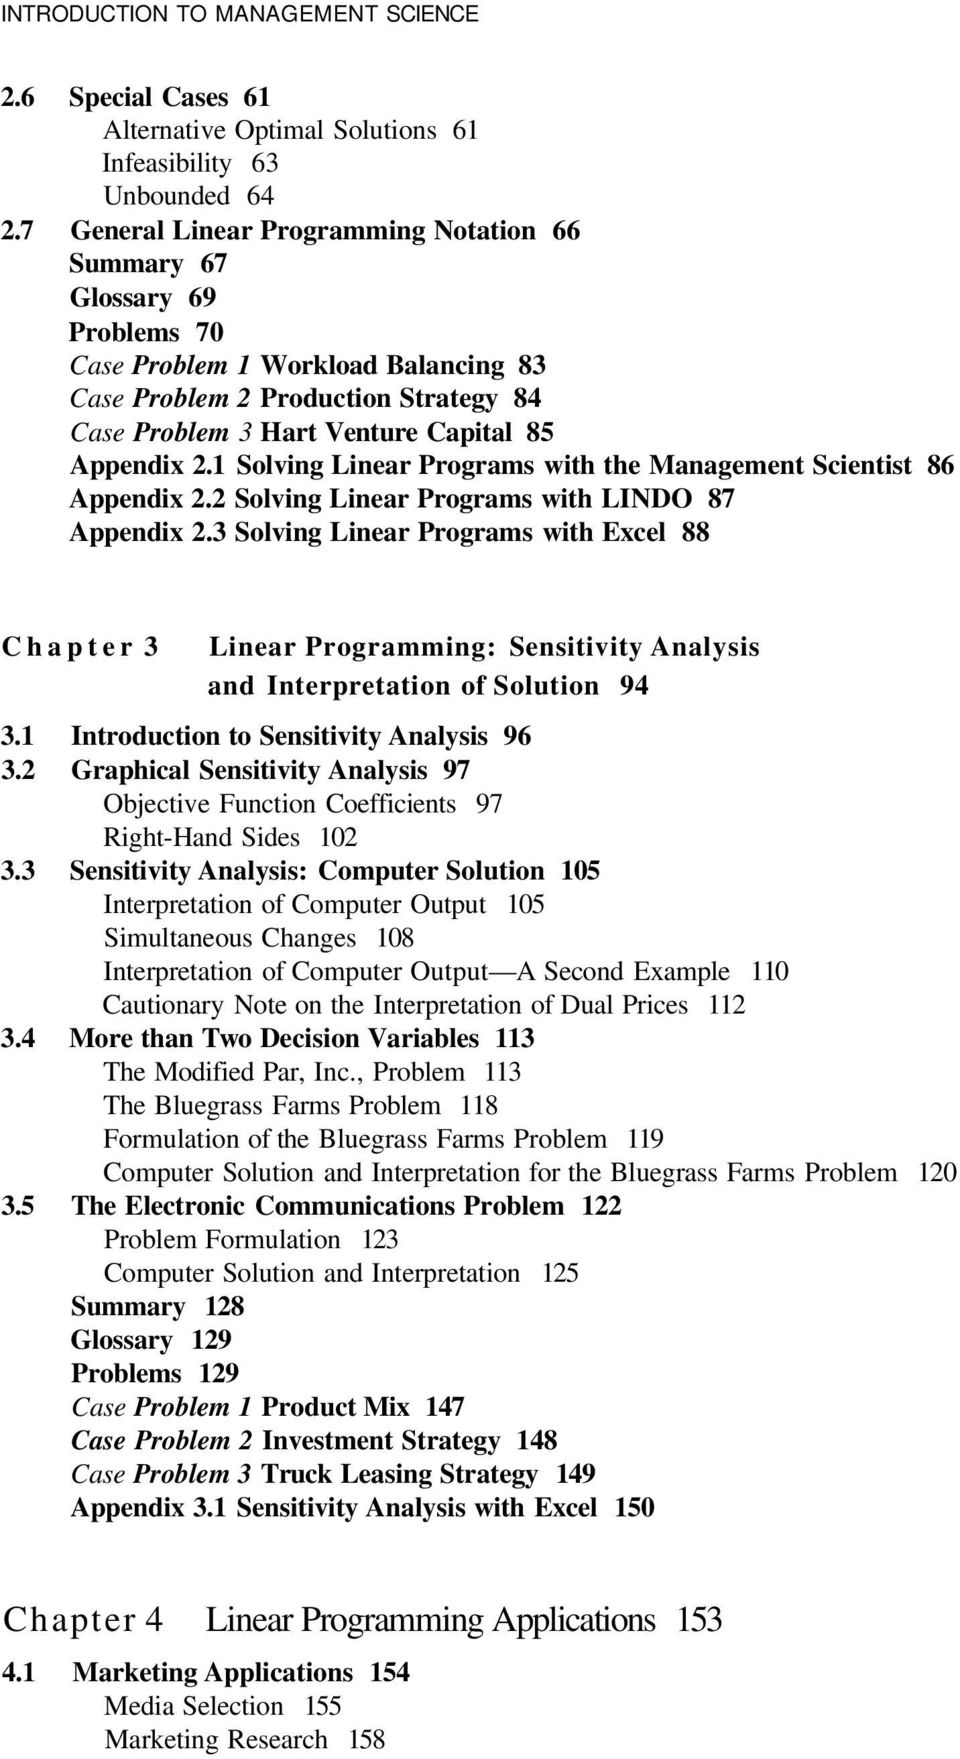 2.1 Solving Linear Programs with the Management Scientist 86 Appendix 2.2 Solving Linear Programs with LINDO 87 Appendix 2.